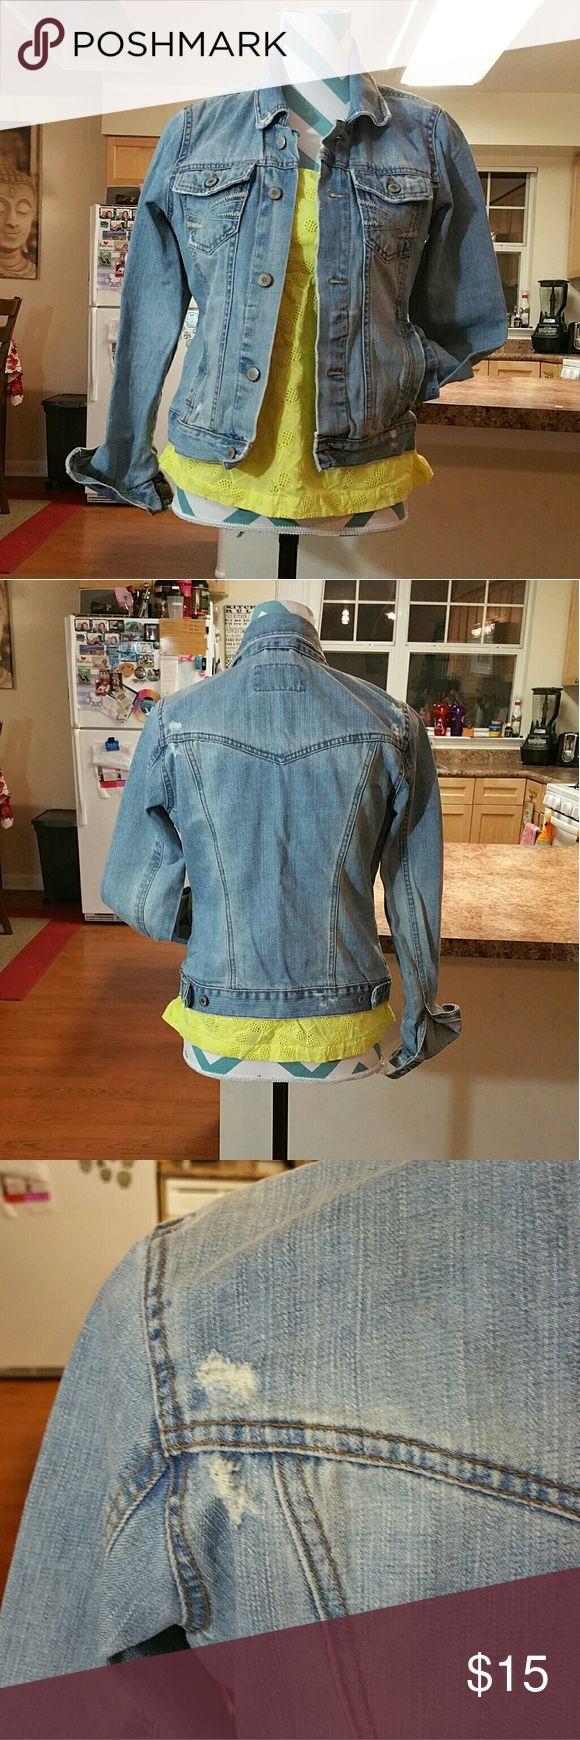 Light wash denim jacket Worn once in perfect condition. Aeropostale light wash denim Jacket. Has some distressing not to crazy. Has some stitching design on front pockets.  Size: medium 100% cotton Jackets & Coats